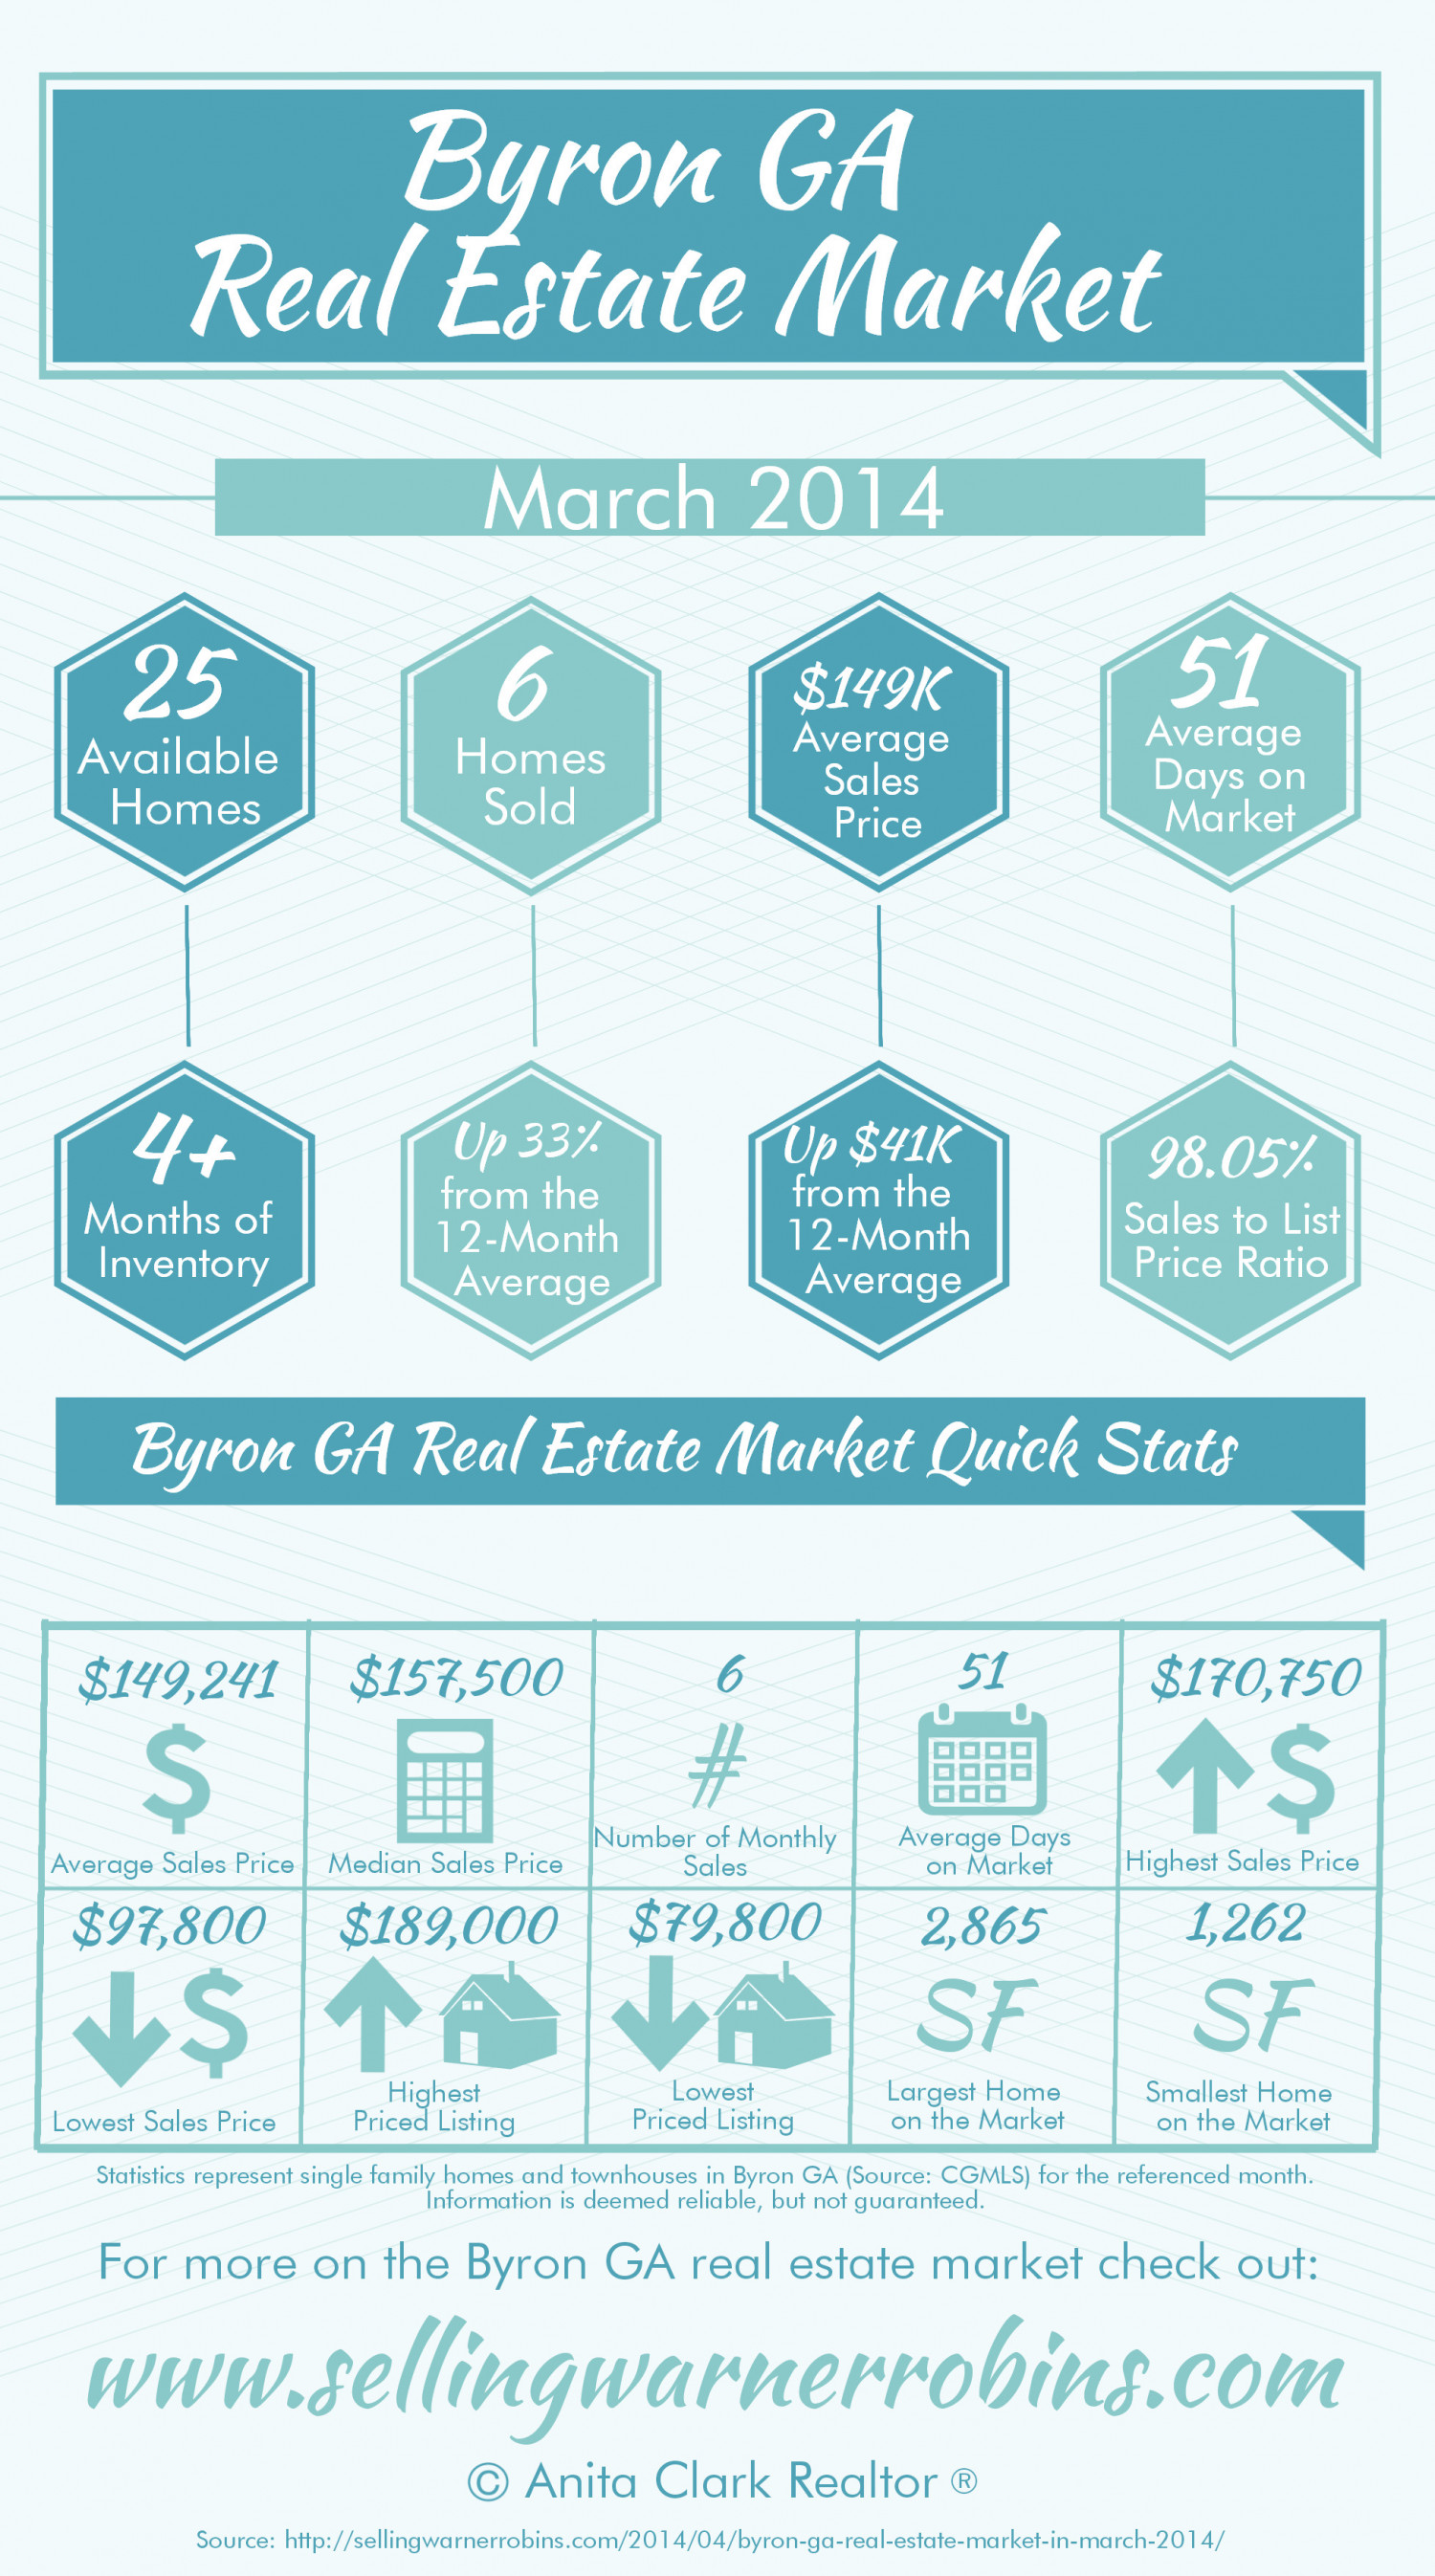 Byron GA Real Estate Market in March 2014 Infographic